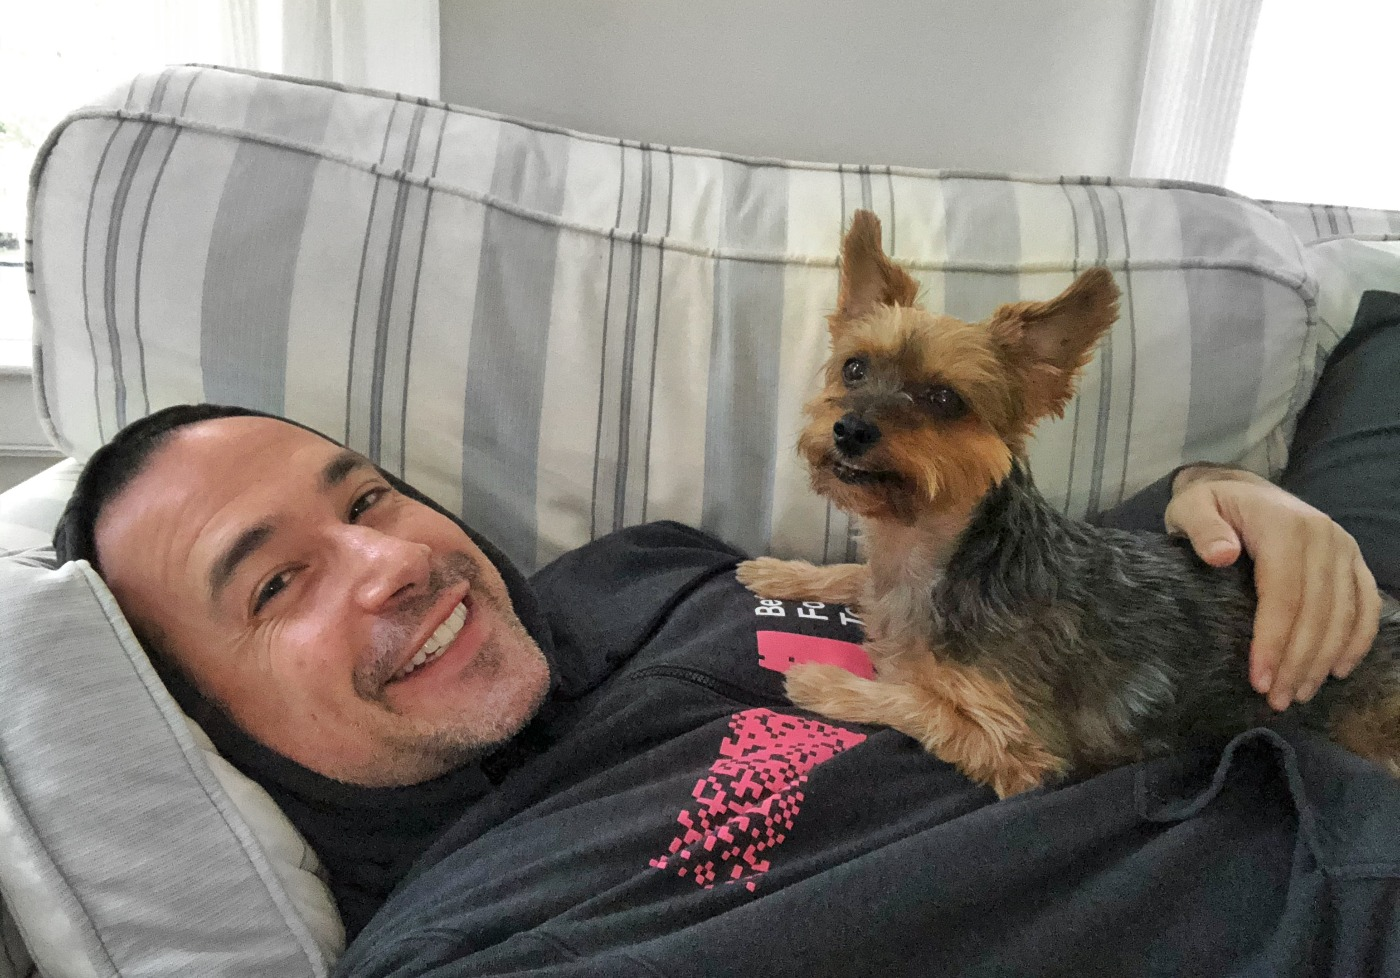 Ben Nadel and his dog Lucy enjoy the benefits of working remotely at InVision, one of the world's largest all-remote companies.